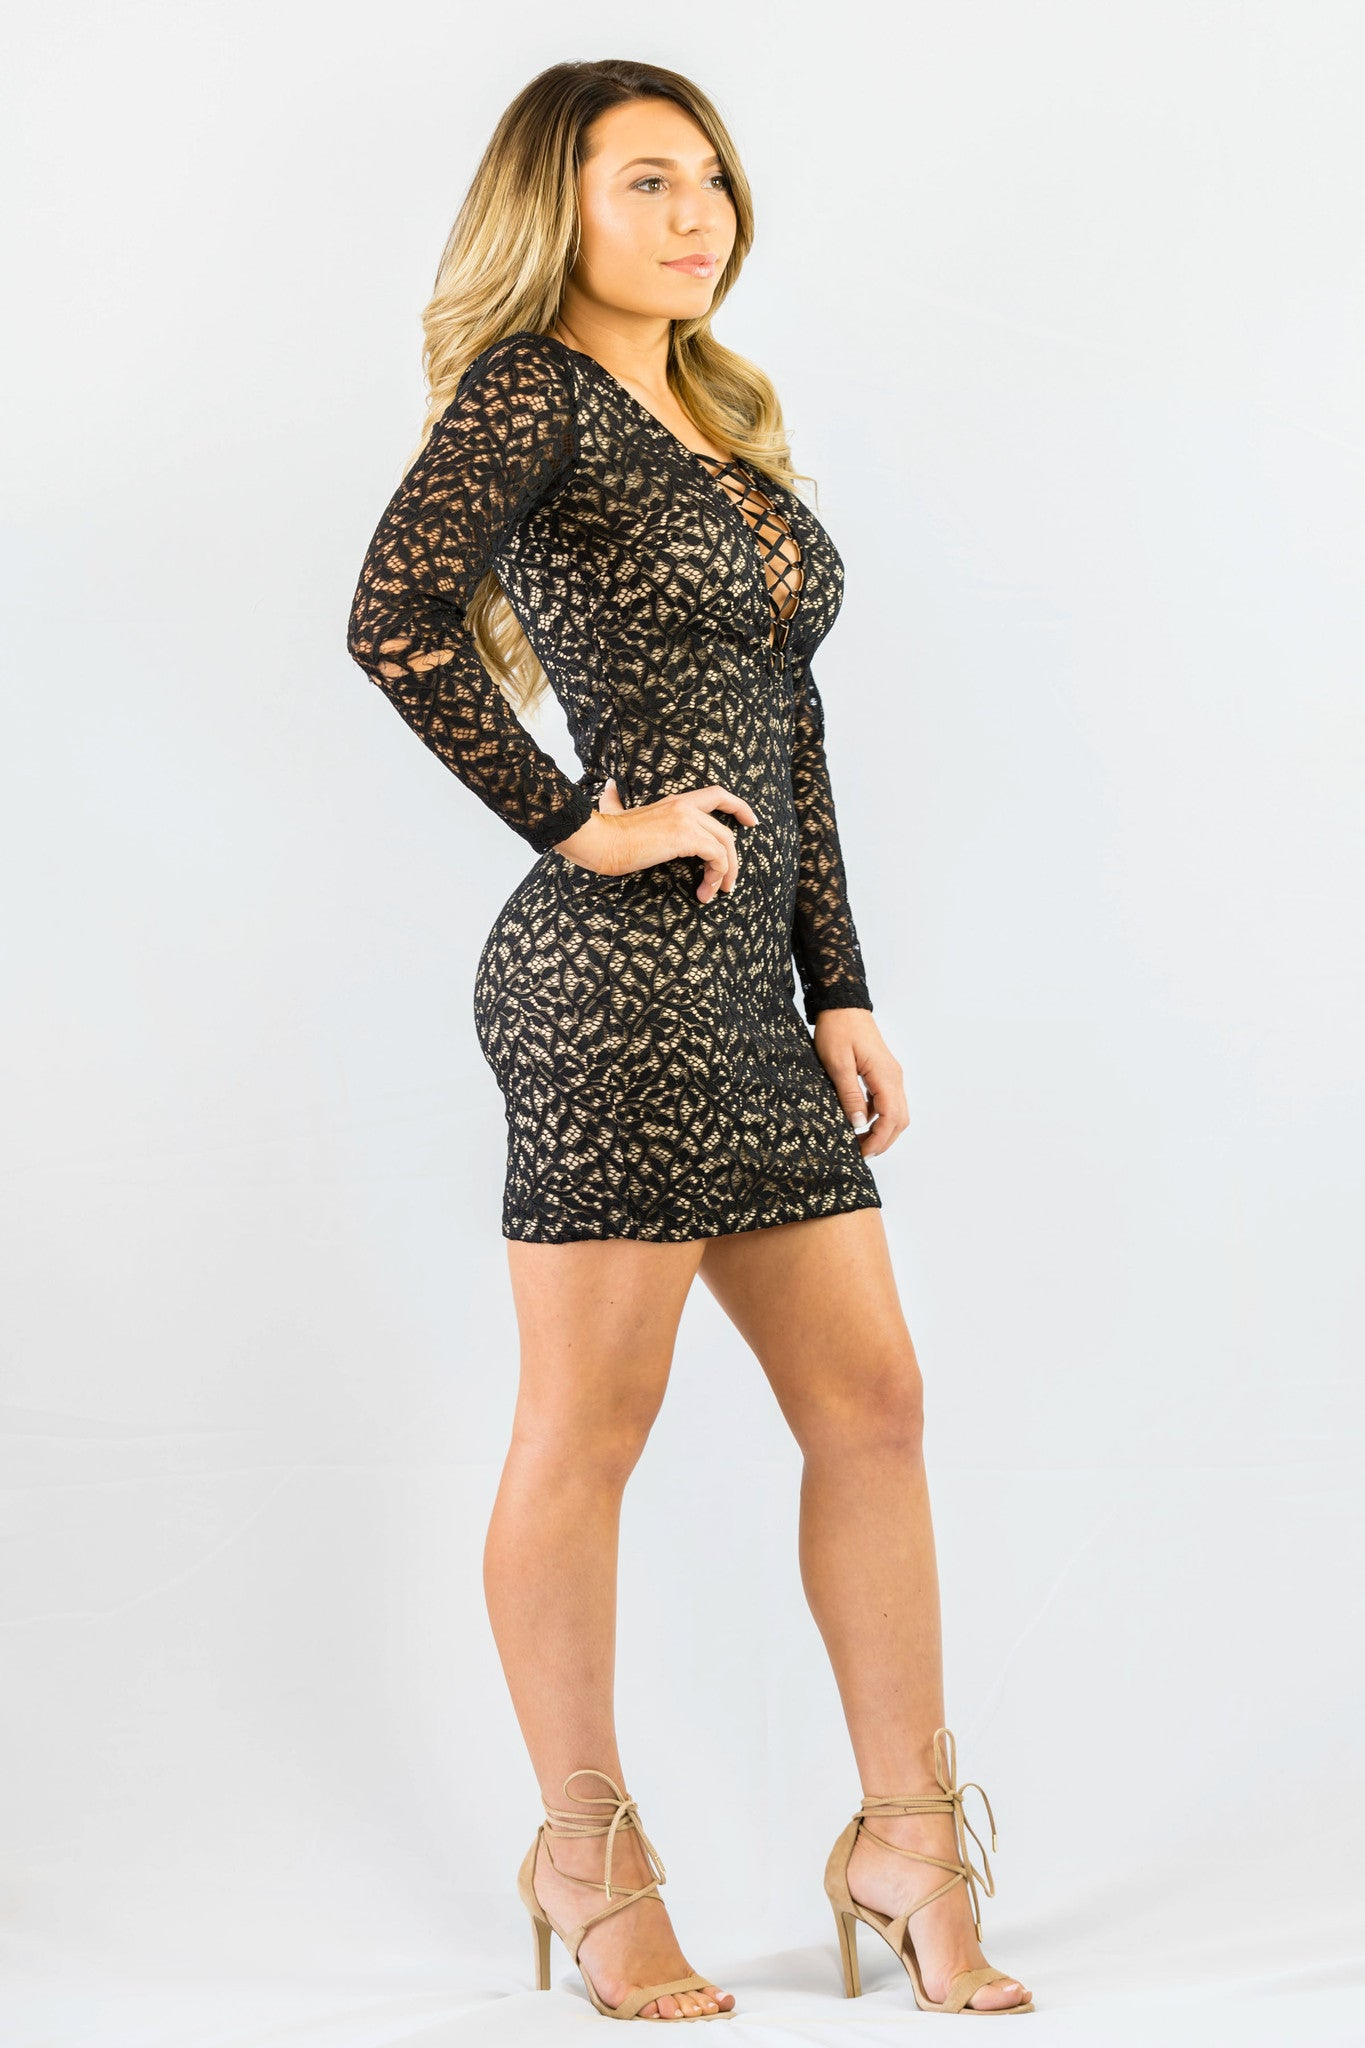 WYLDR In Too Deep Lace Black Body Con Dress - DRESSES - WYLDR - Free Vibrationz - 4